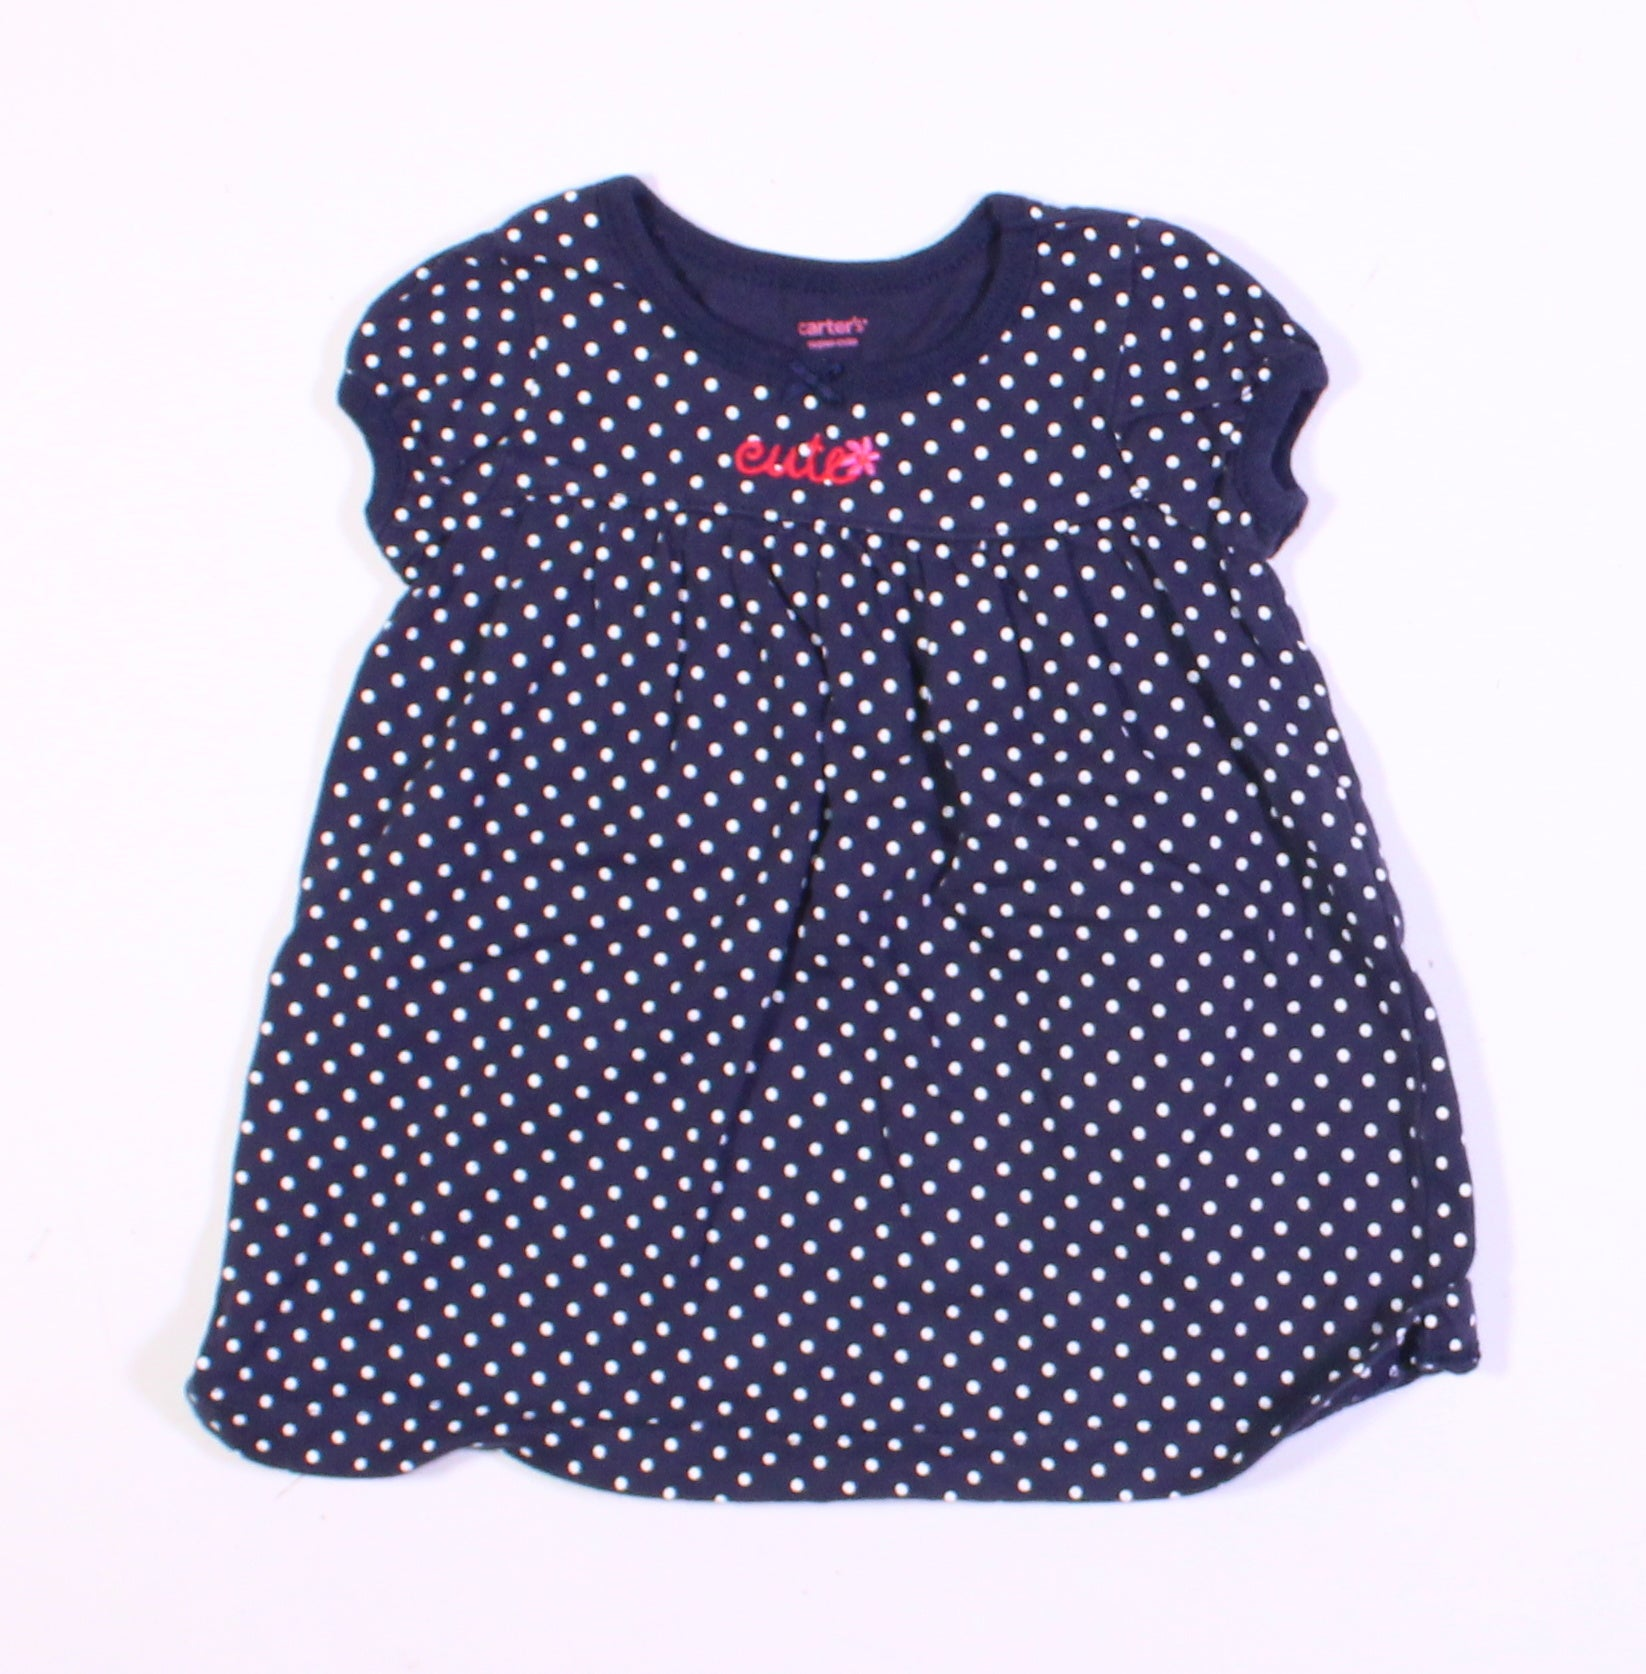 CARTERS NAVY CUTE DRESS 3M EUC